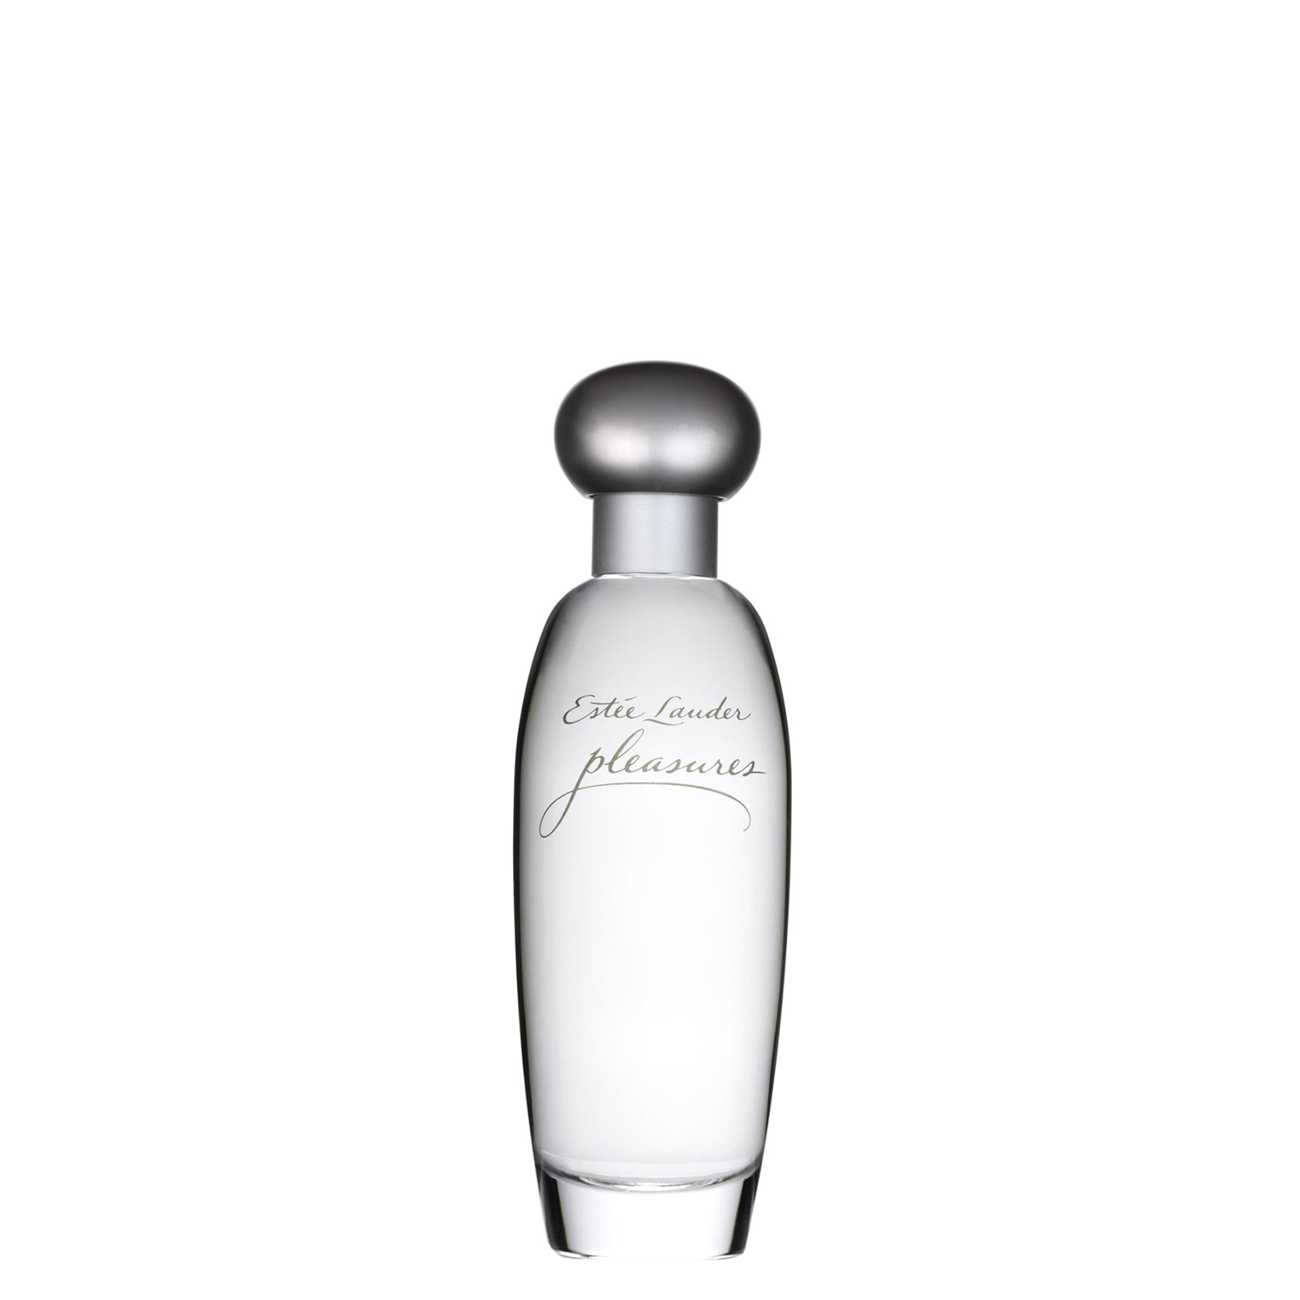 PLEASURES 50ml imagine